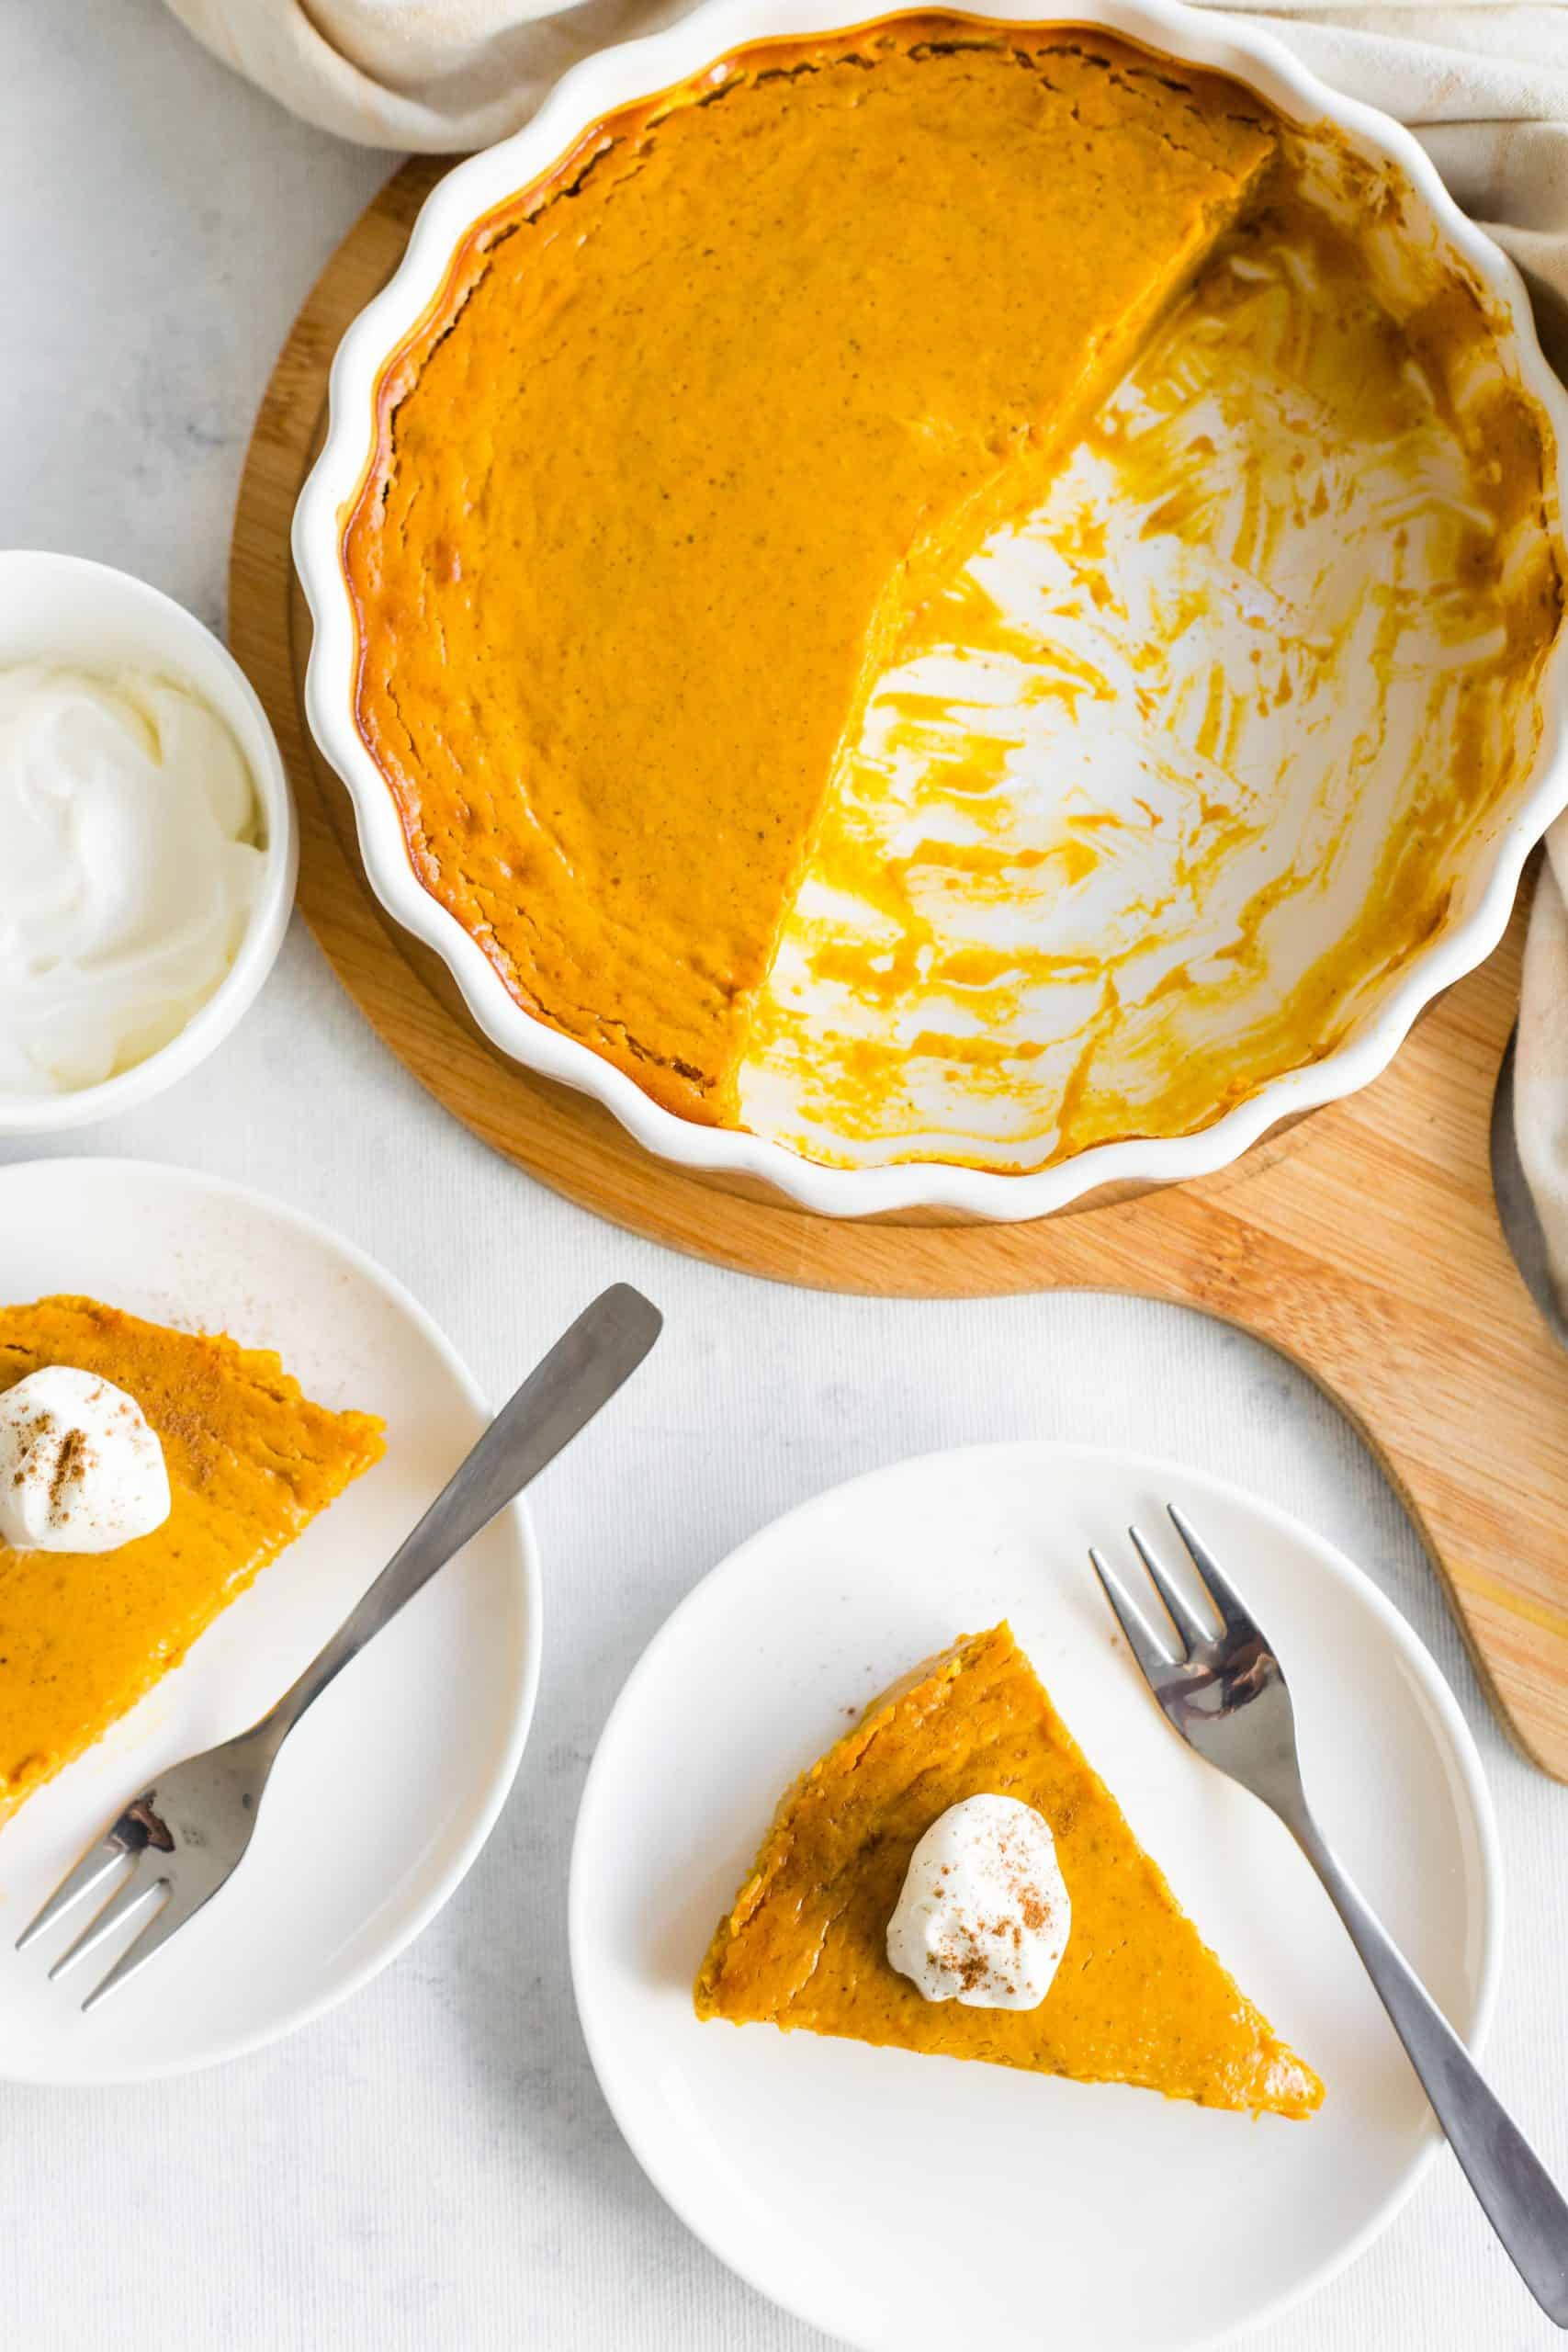 Top-down view of plates of pumpkin pie on a table top.